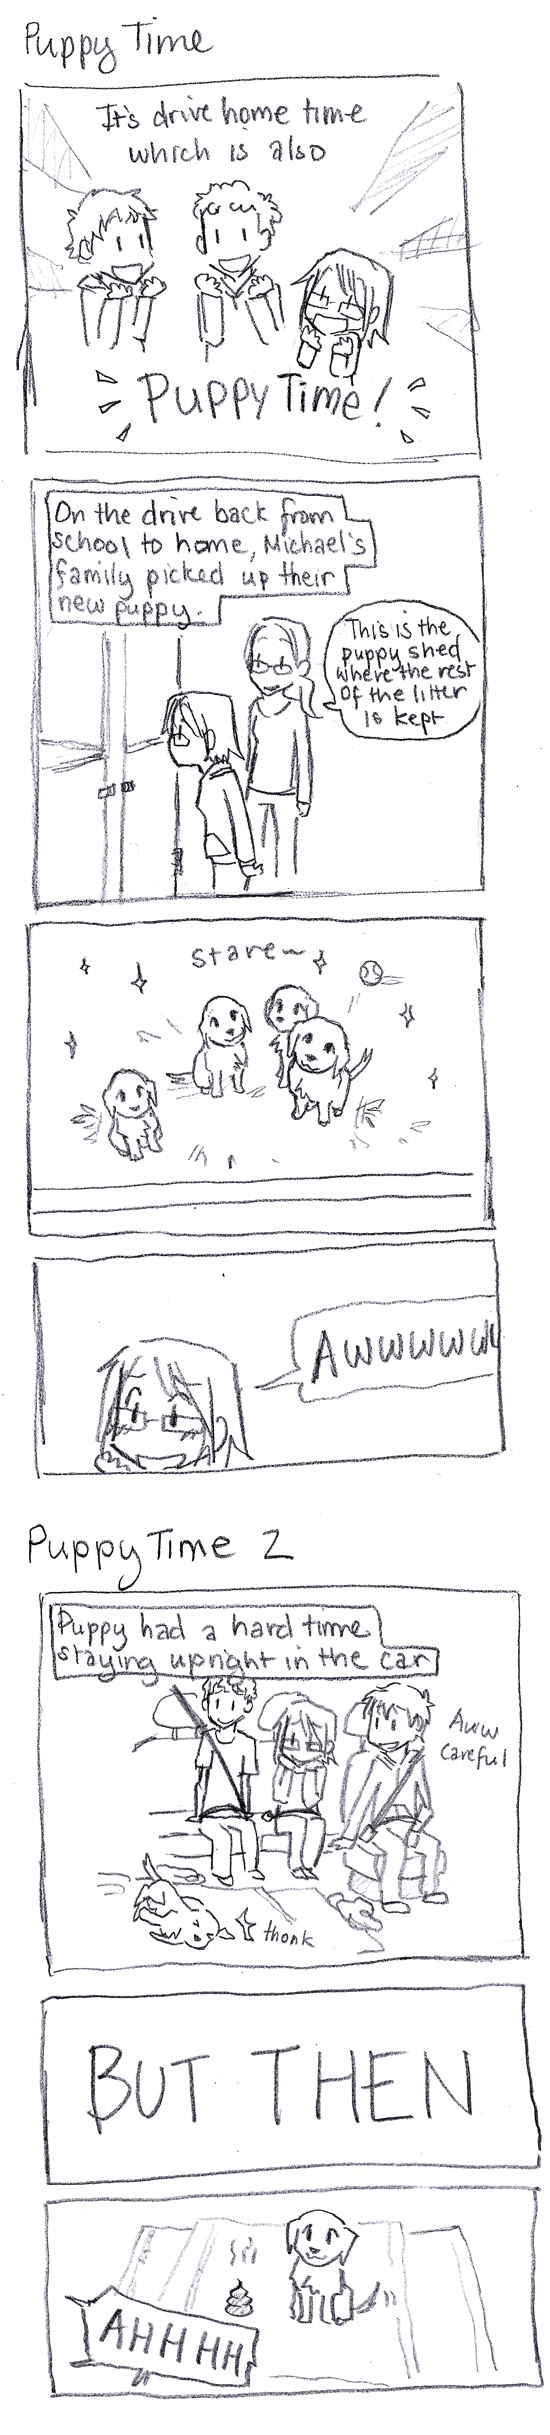 Winter Break Comics: Puppy Time